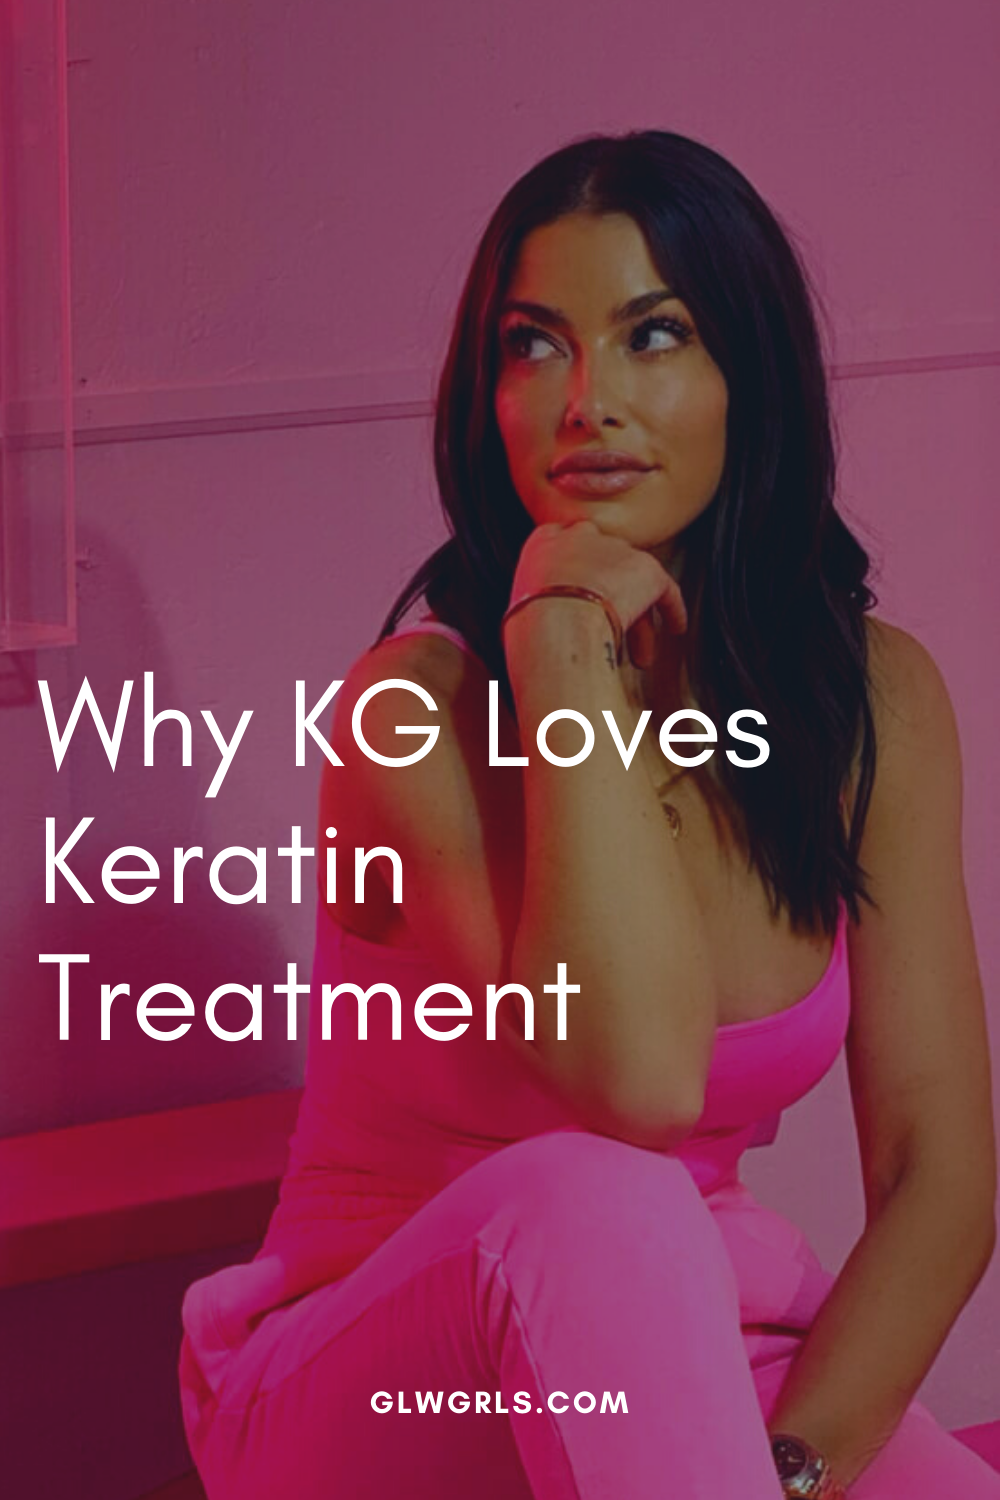 Why KG loves keratin treatment · GLW GRLS #brazilianstraightening Why KG loves keratin treatment · GLW GRLS, #africanamericanhaircare #blackhaircare #GLW #greenhaircare #GRLS #haircareads #haircareadvertising #haircareaesthetic #haircarealoevera #haircarebackground #haircarebeauty #haircareblonde #haircarebrand #haircarecollection #haircaredaily #haircaredandruff #haircaredesign #haircarediy #haircaredrugstore #haircaredry #haircareegg #haircareessentials ...